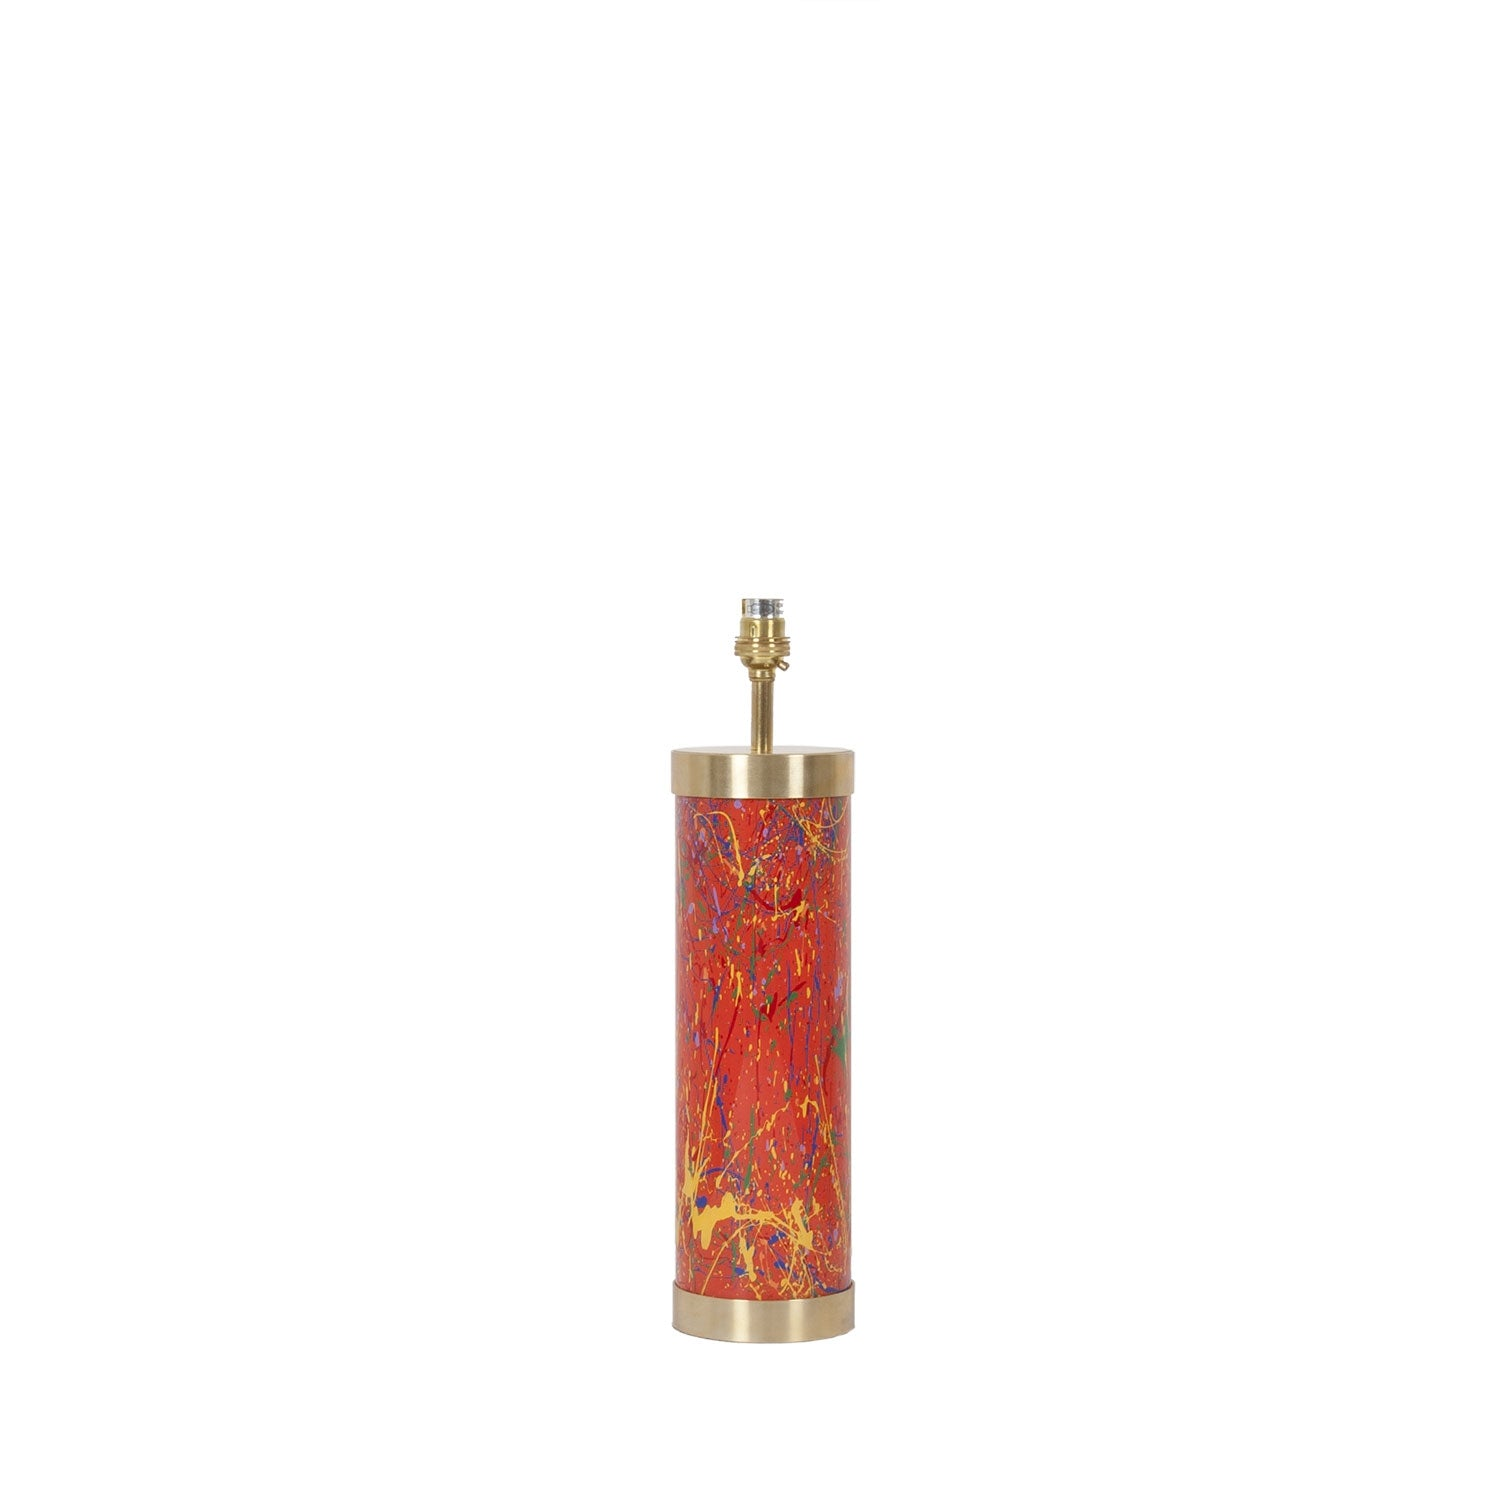 Glass & Brass Lamp - End of Day Confetti - Red